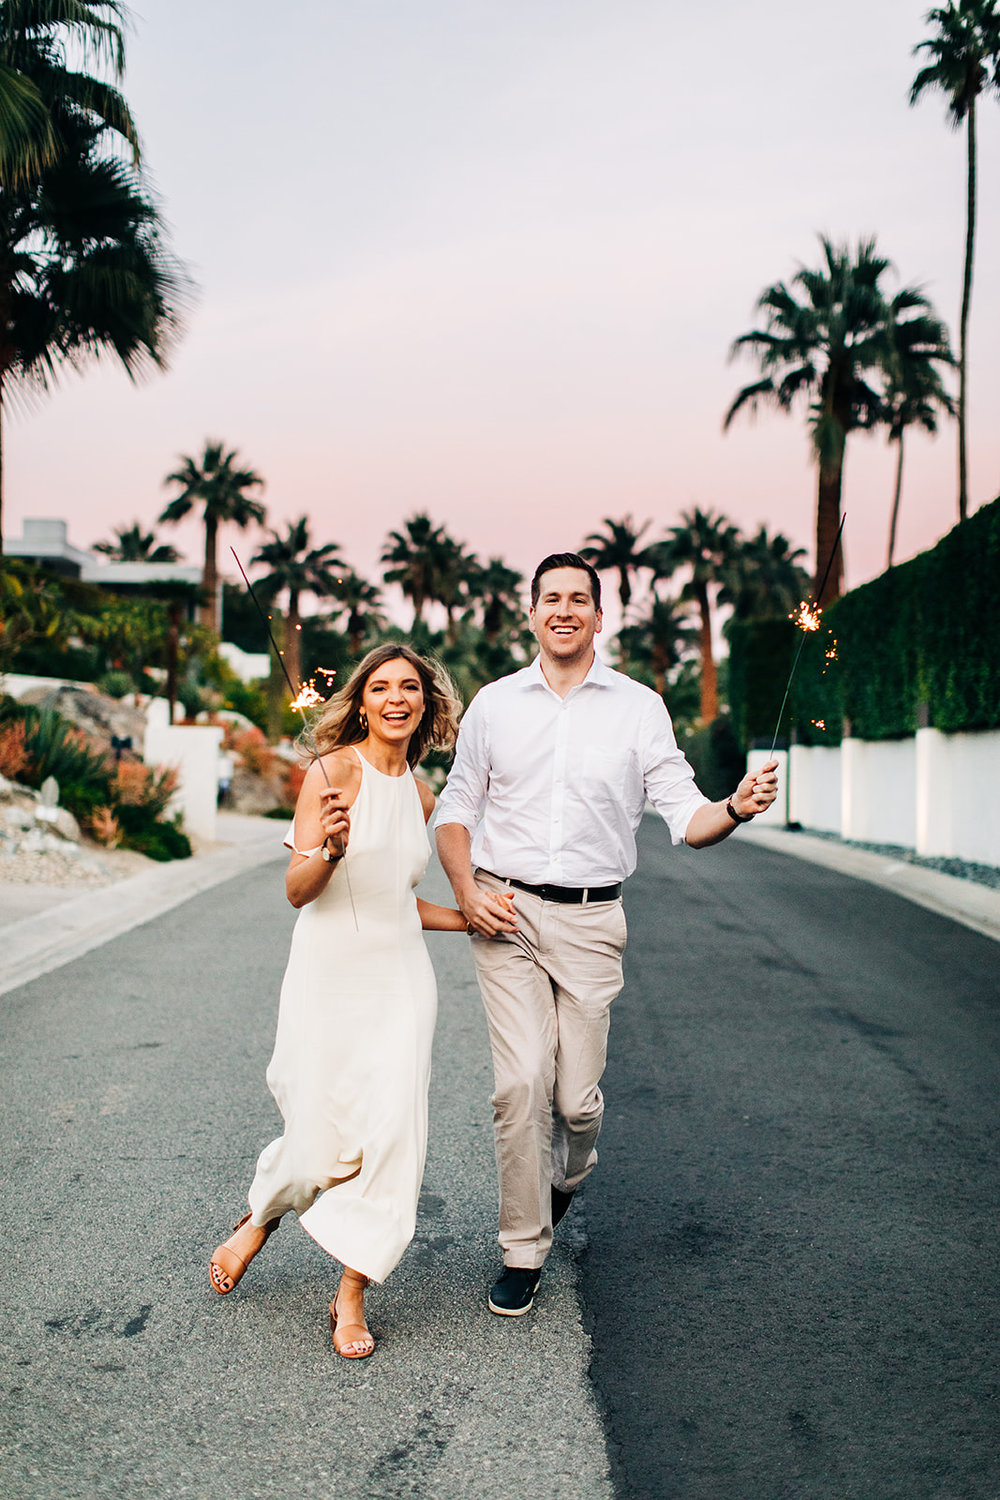 Paulina-Drew_Palm-Springs-Engagement-Photos_Clarisse-Rae_Southern-California-Wedding-Photographer-59